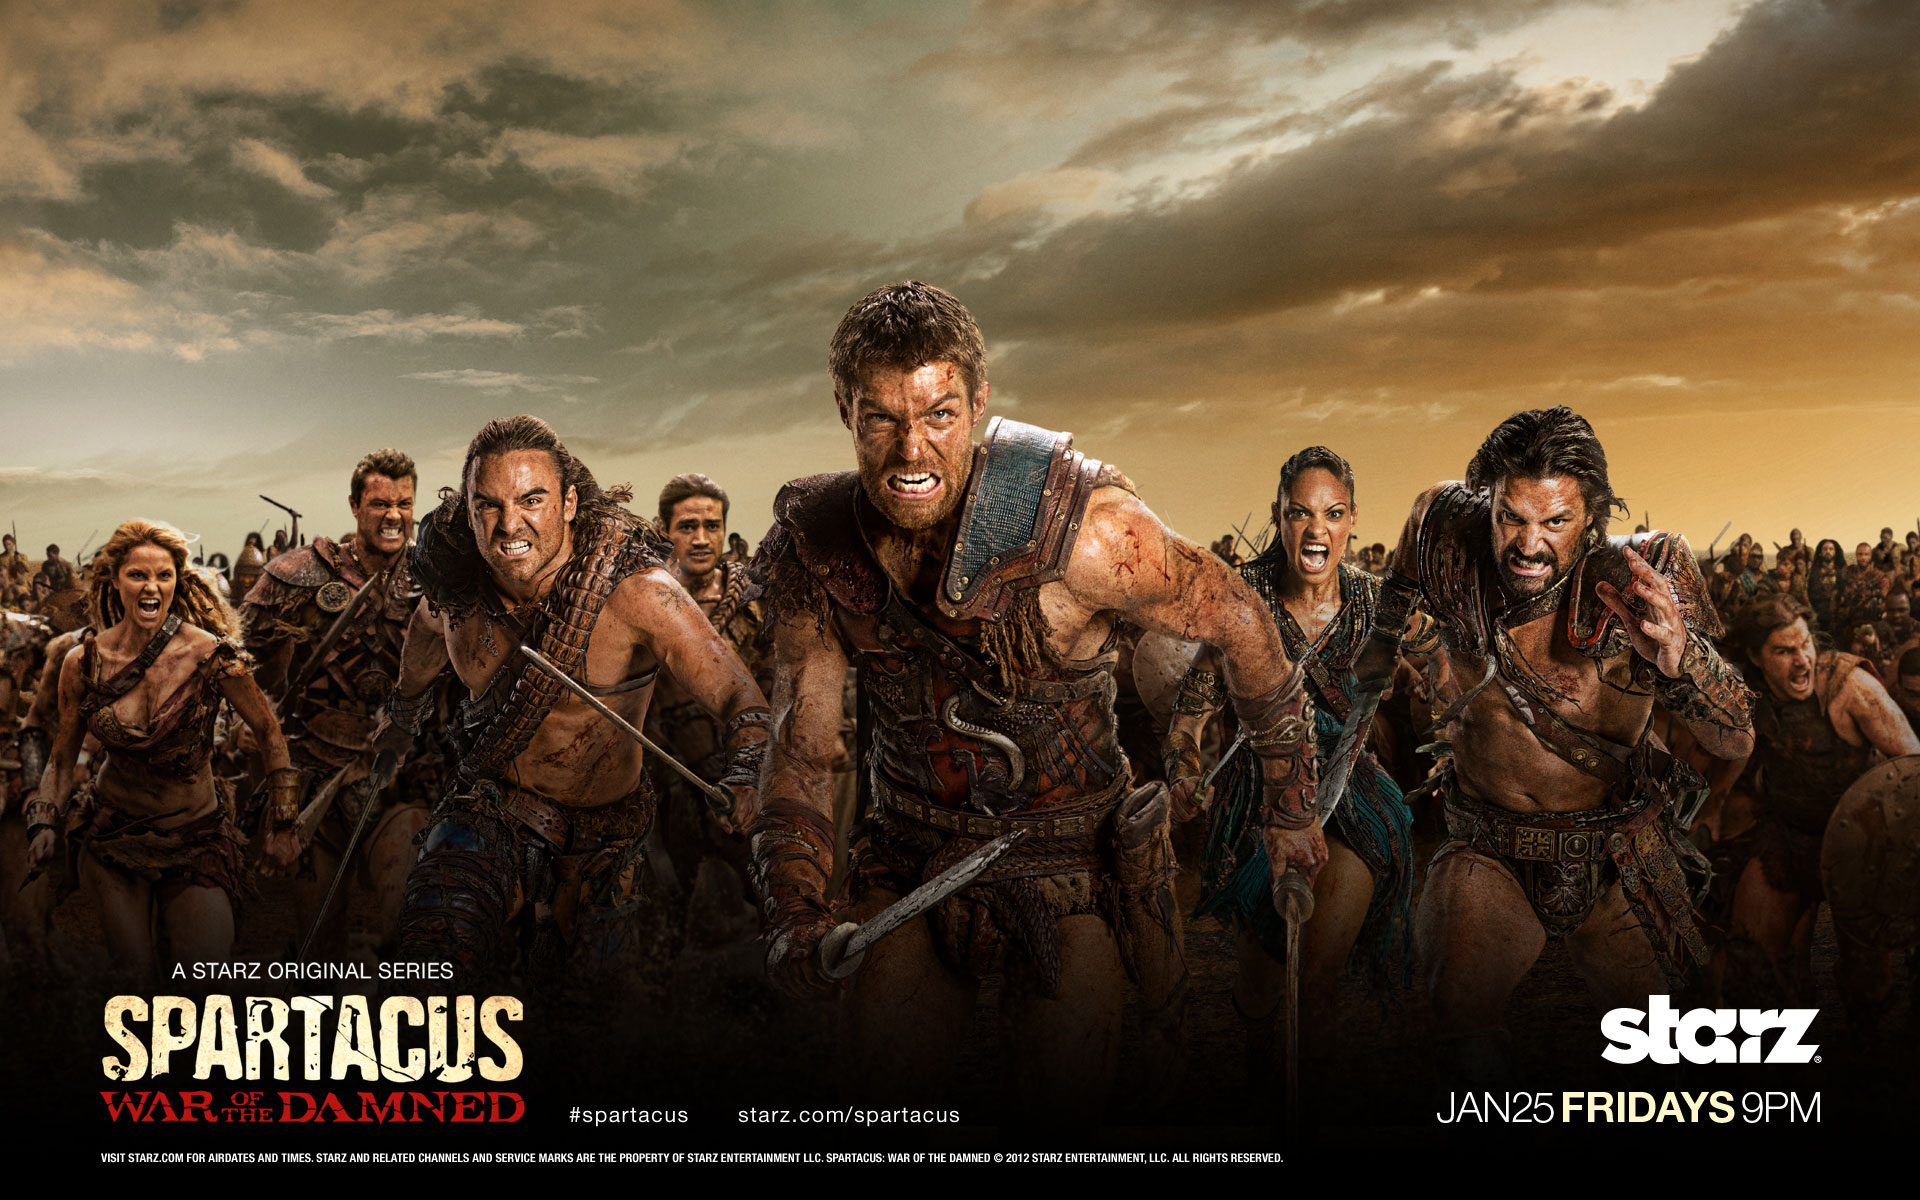 Spartacus-War-of-the-Damned-spartacus-blood-and-sand-33549642-1920-1200